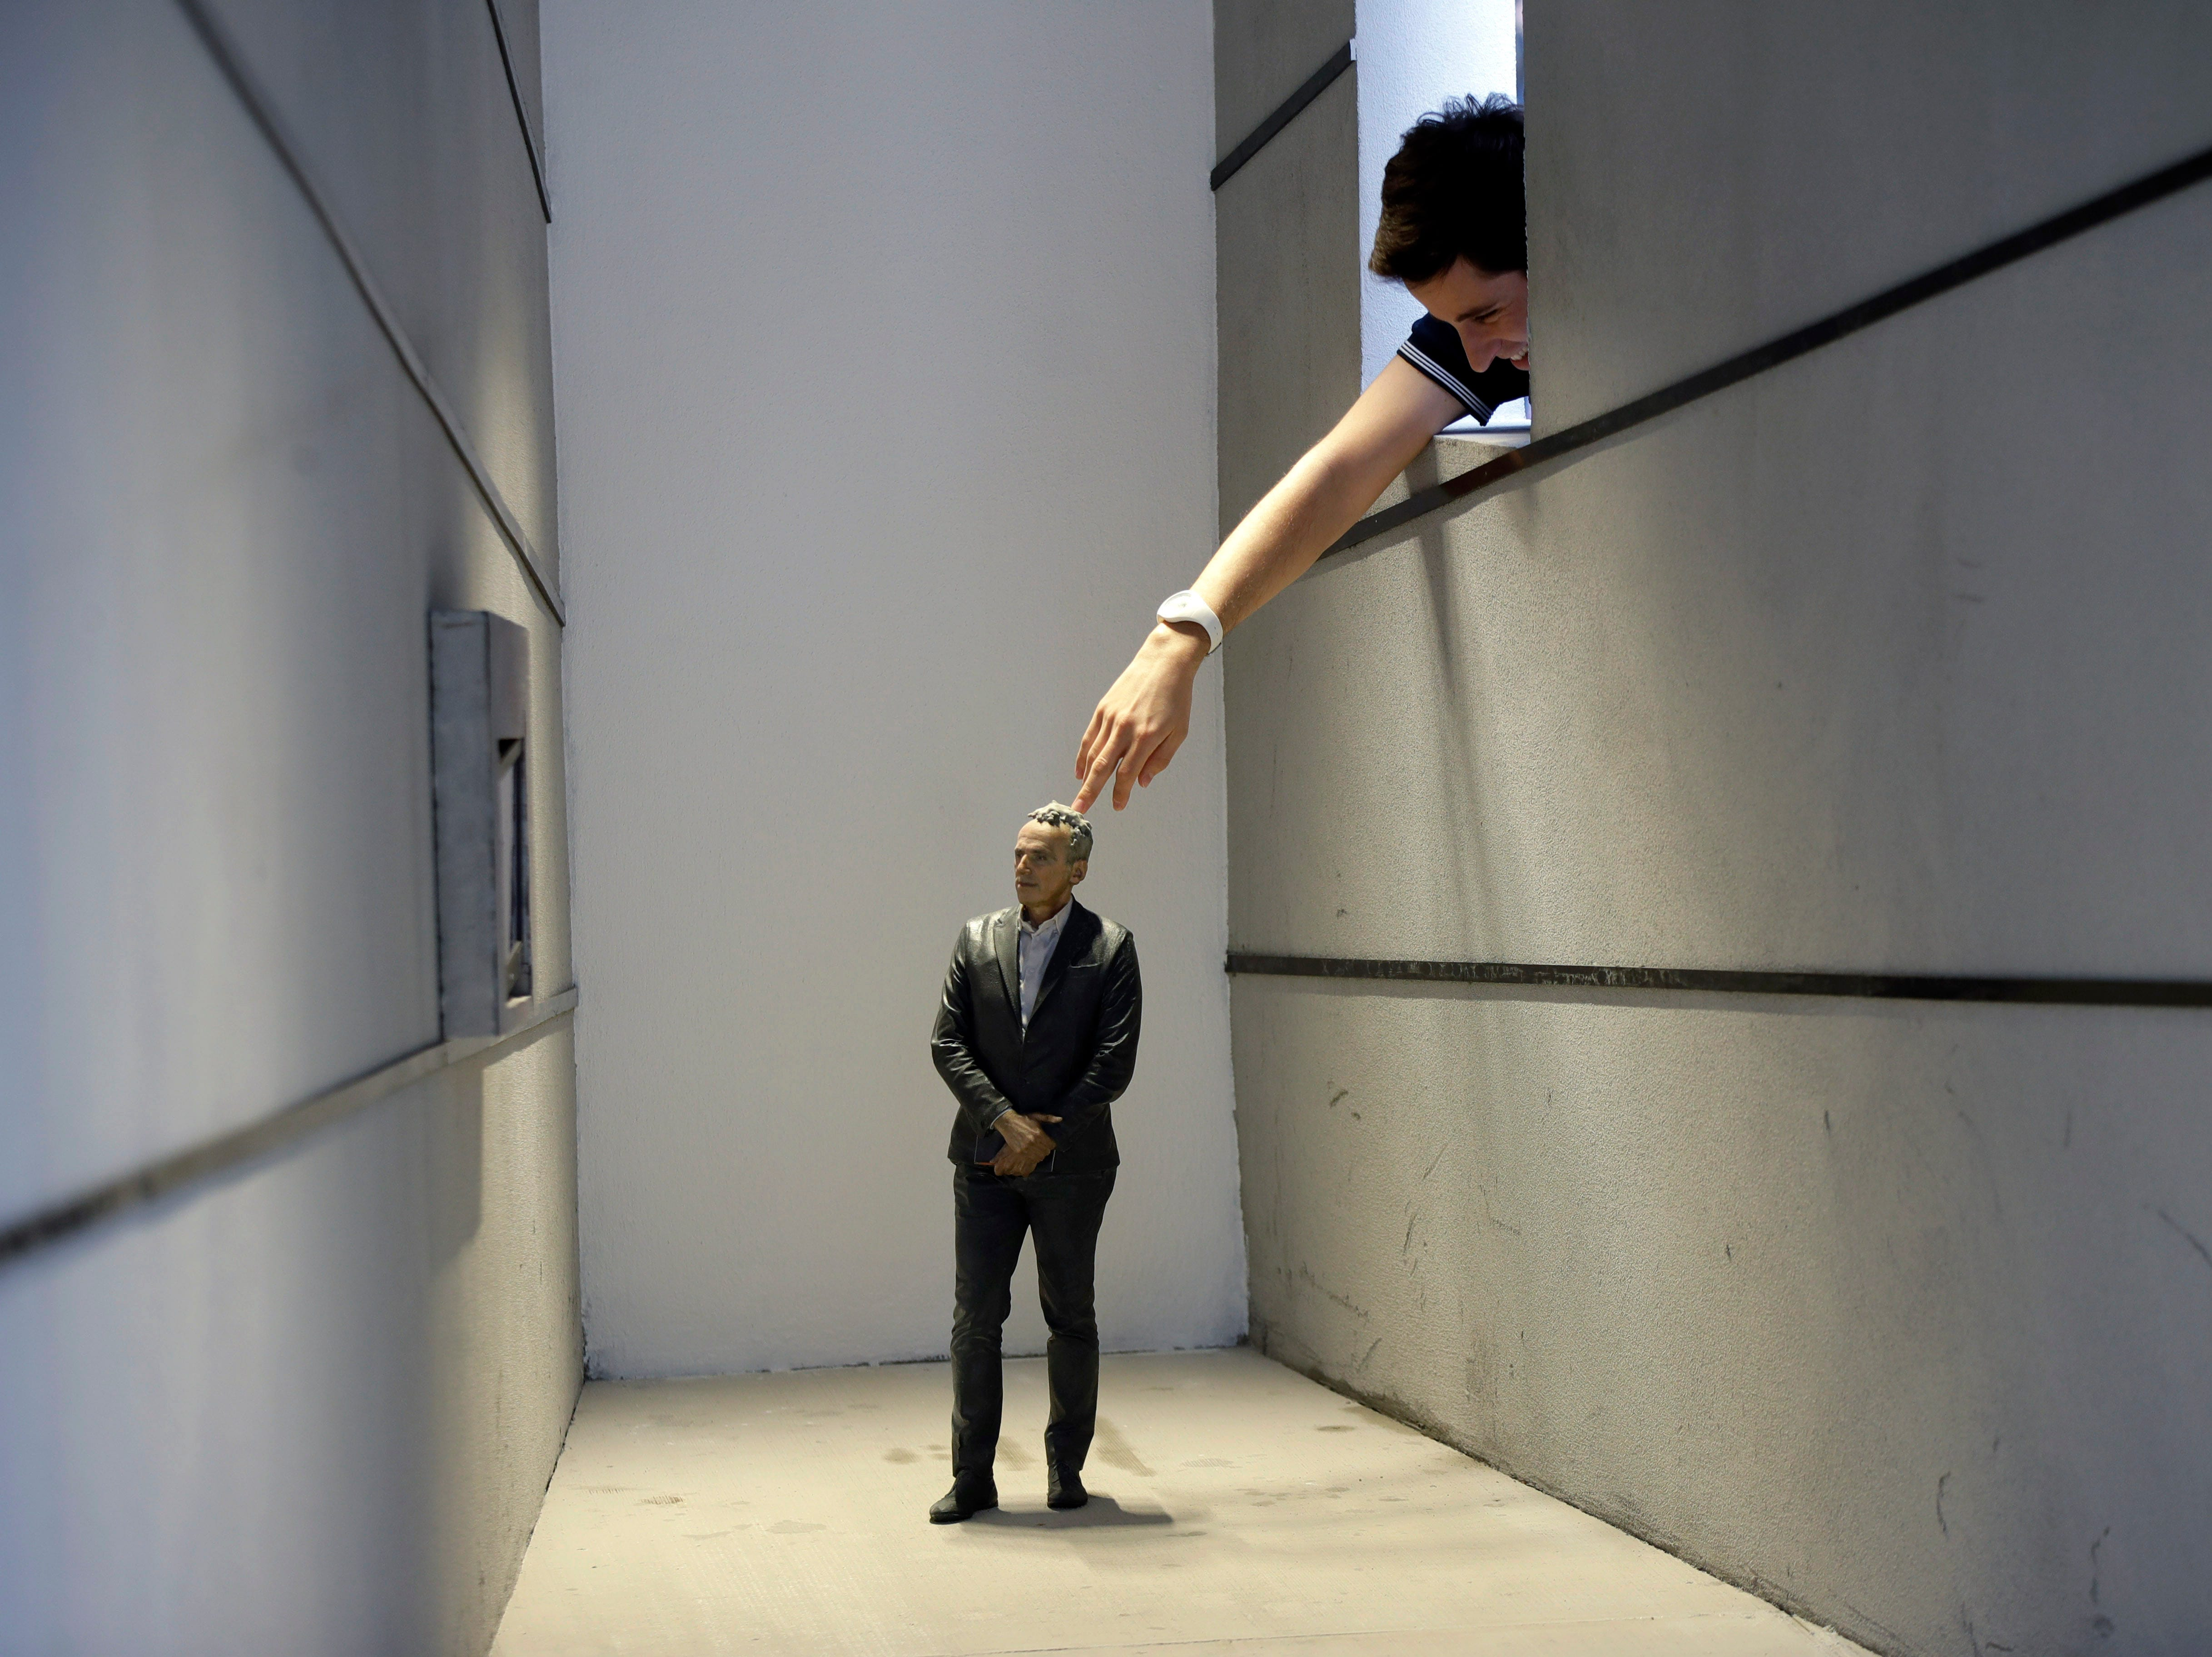 A visitor touches a reproduction of a man of 'Human Proportions' installation by architect Massimo Iosa Ghini displayed on the occasion of the Fuorisalone exhibition, at the Furniture fair, in Milan, Italy, Monday, April 8, 2019. The Milan Furniture fair week is taking place in various locations from April 9-14, 2019.